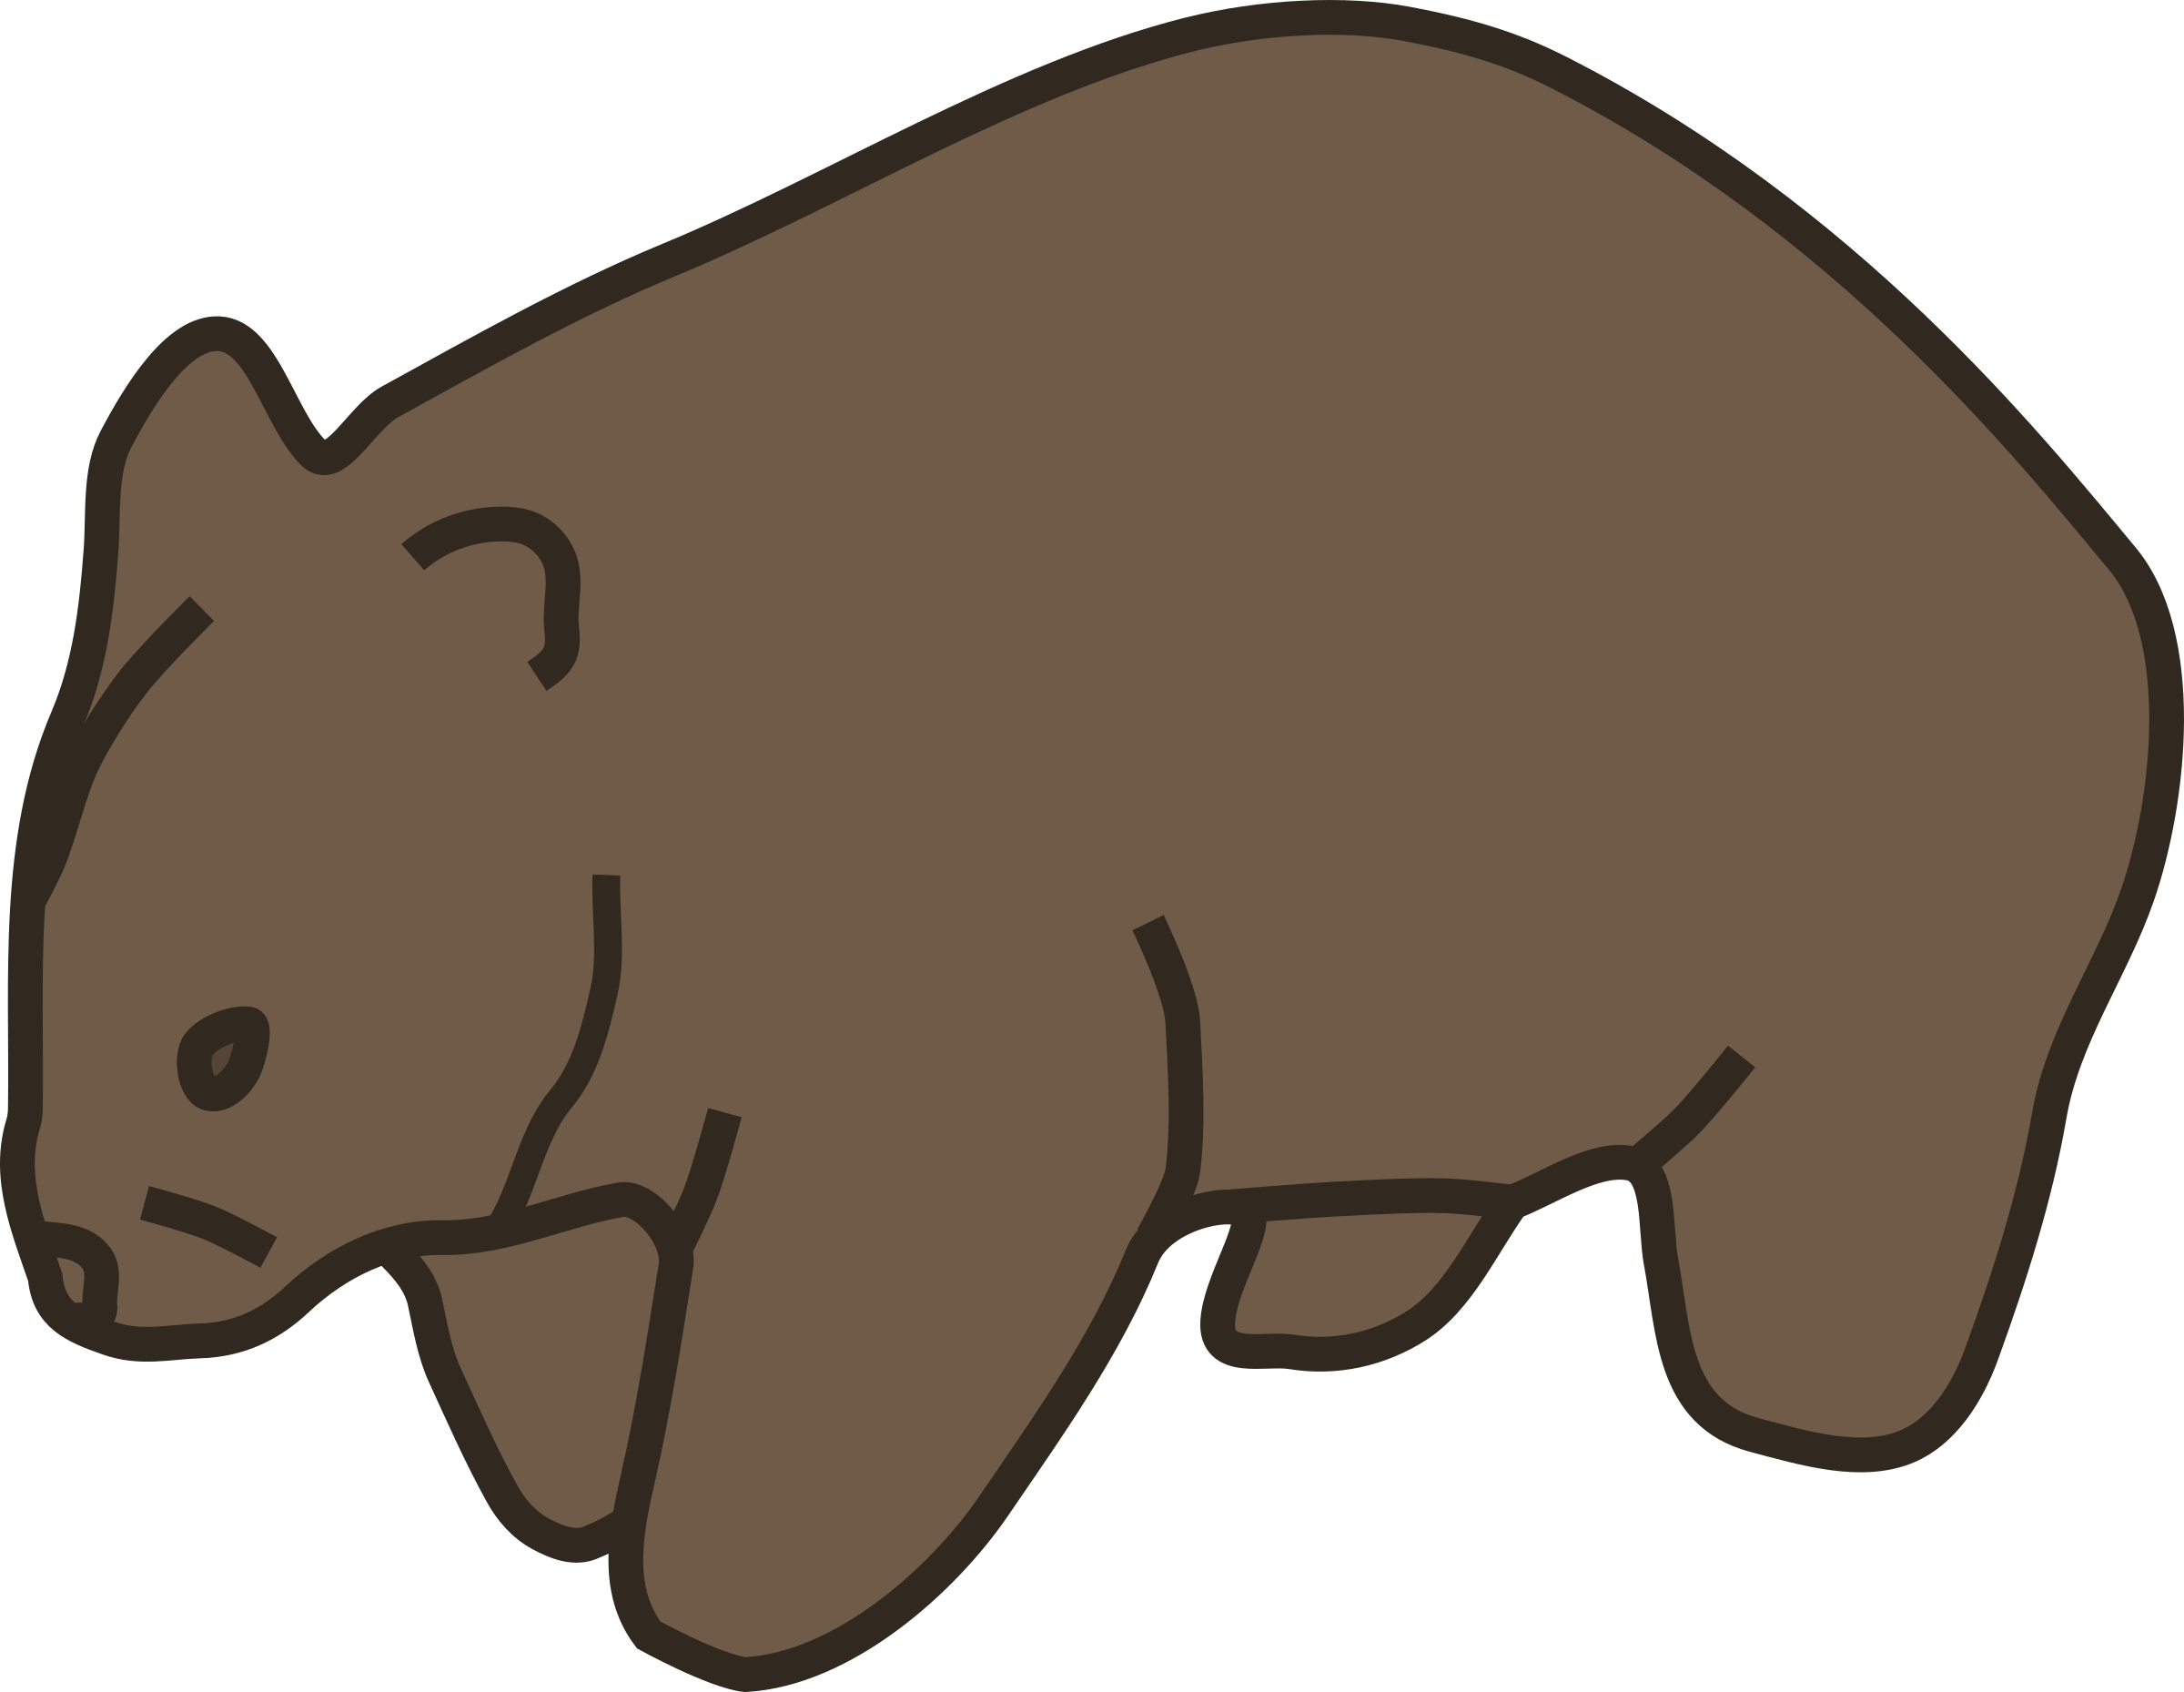 Wombat pictures clipart picture black and white download Wombat clipart » Clipart Station picture black and white download